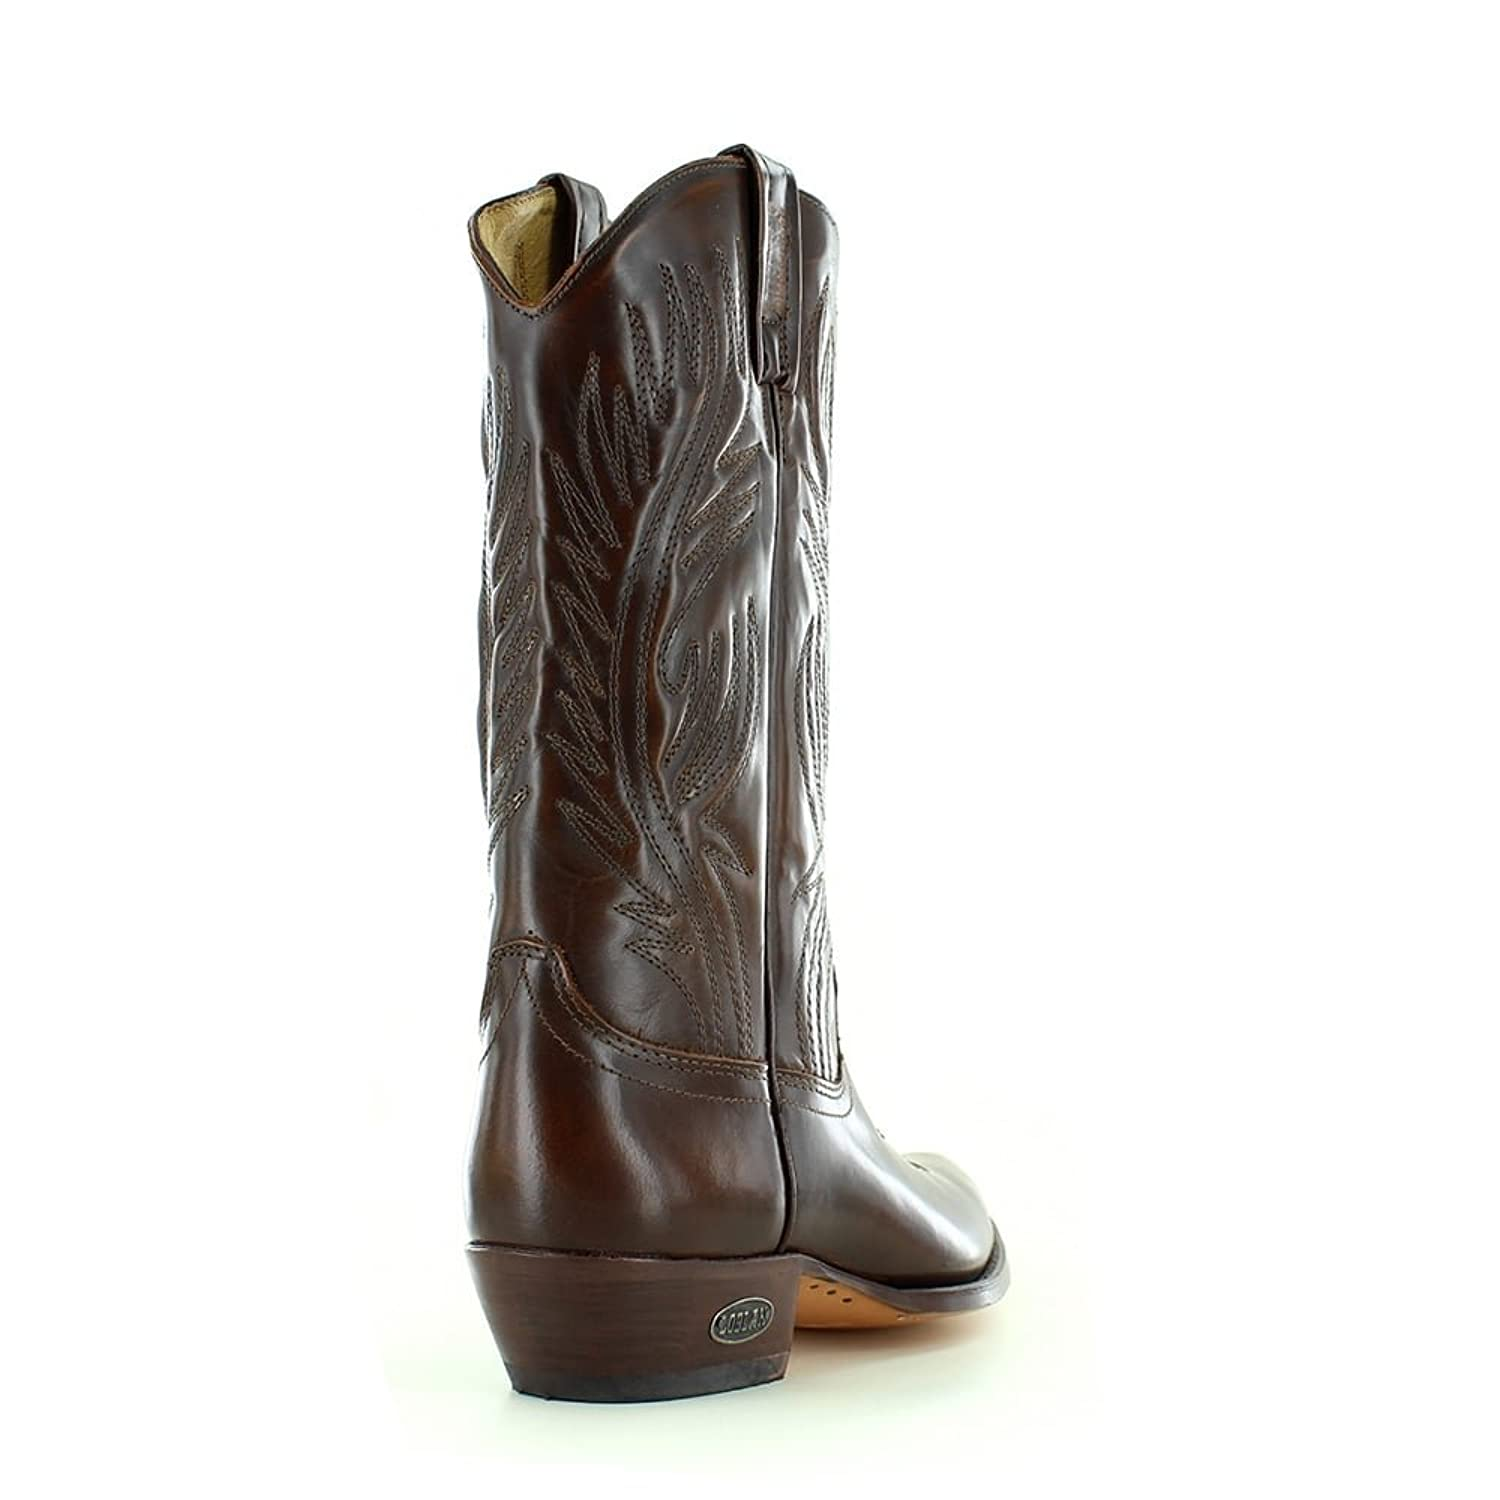 LOBLAN 194 Brown Whisky Leather Cowboy Boots Men's Western Pointed Boot  Hand Made 0194: Amazon.co.uk: Shoes & Bags